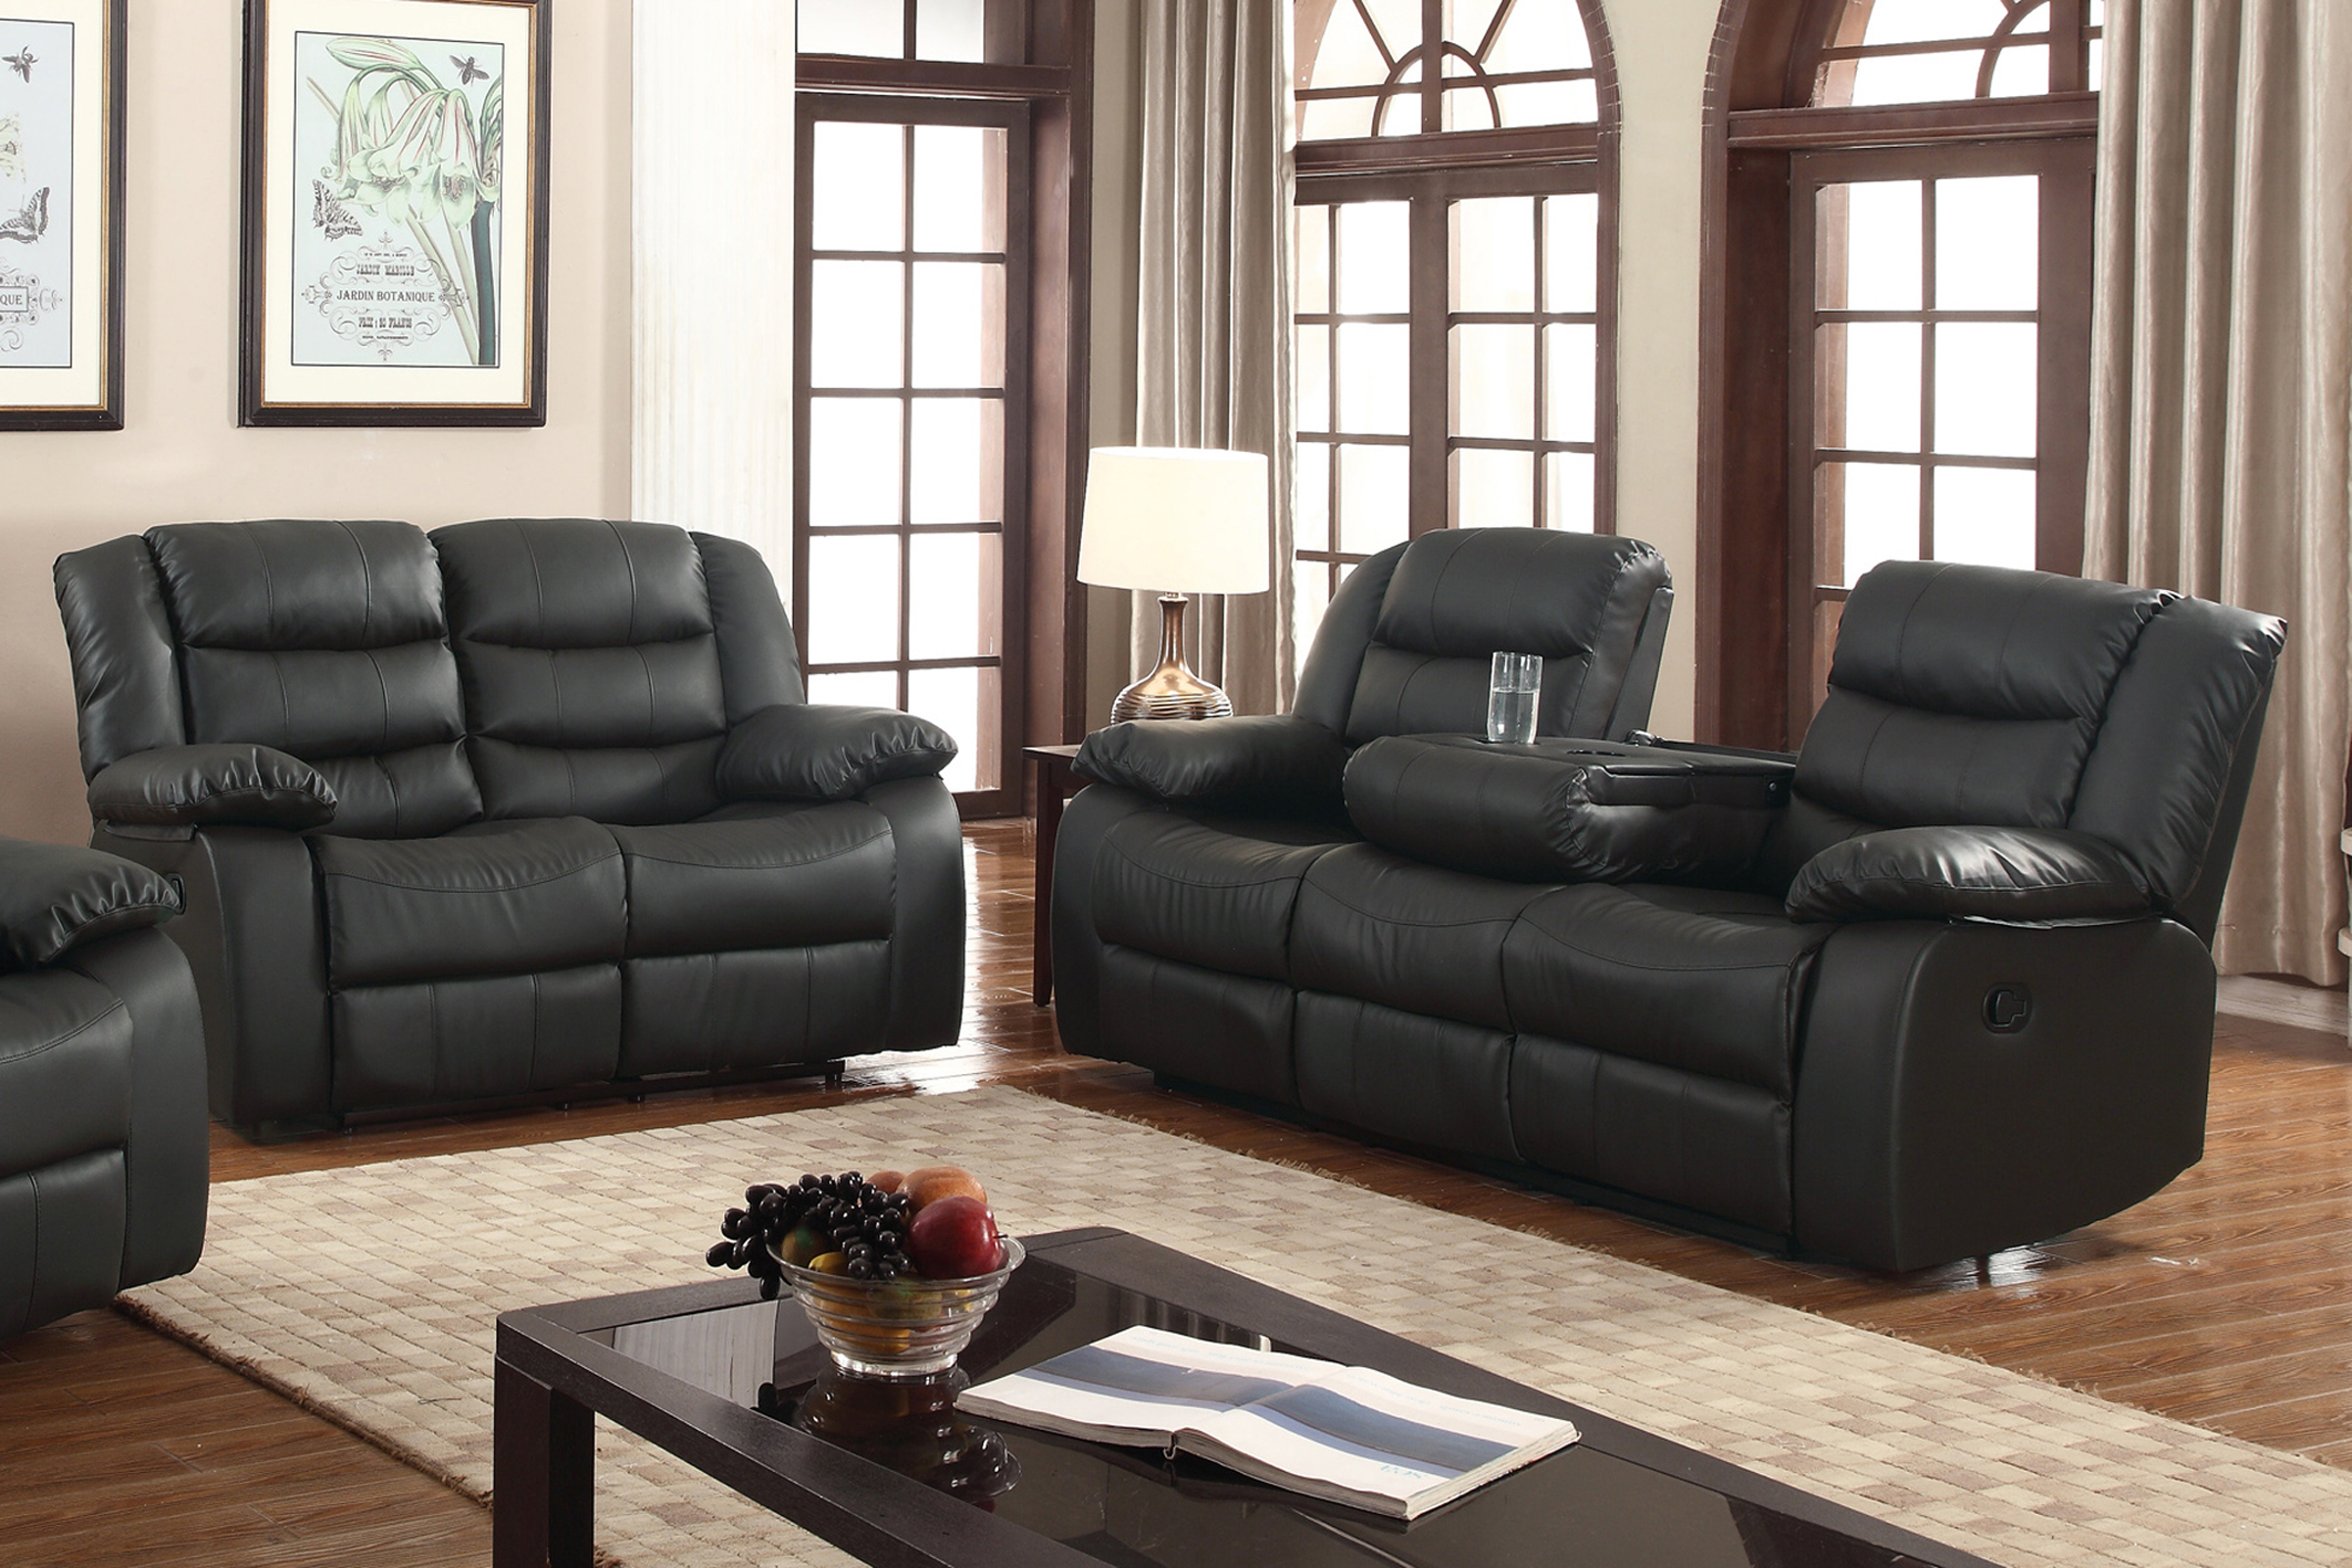 Layla 2 Pc Black Faux Leather Living Room Reclining Sofa And Loveseat Set With Drop Down Tea Table pertaining to 15 Smart Tricks of How to Makeover Walmart Living Room Sets